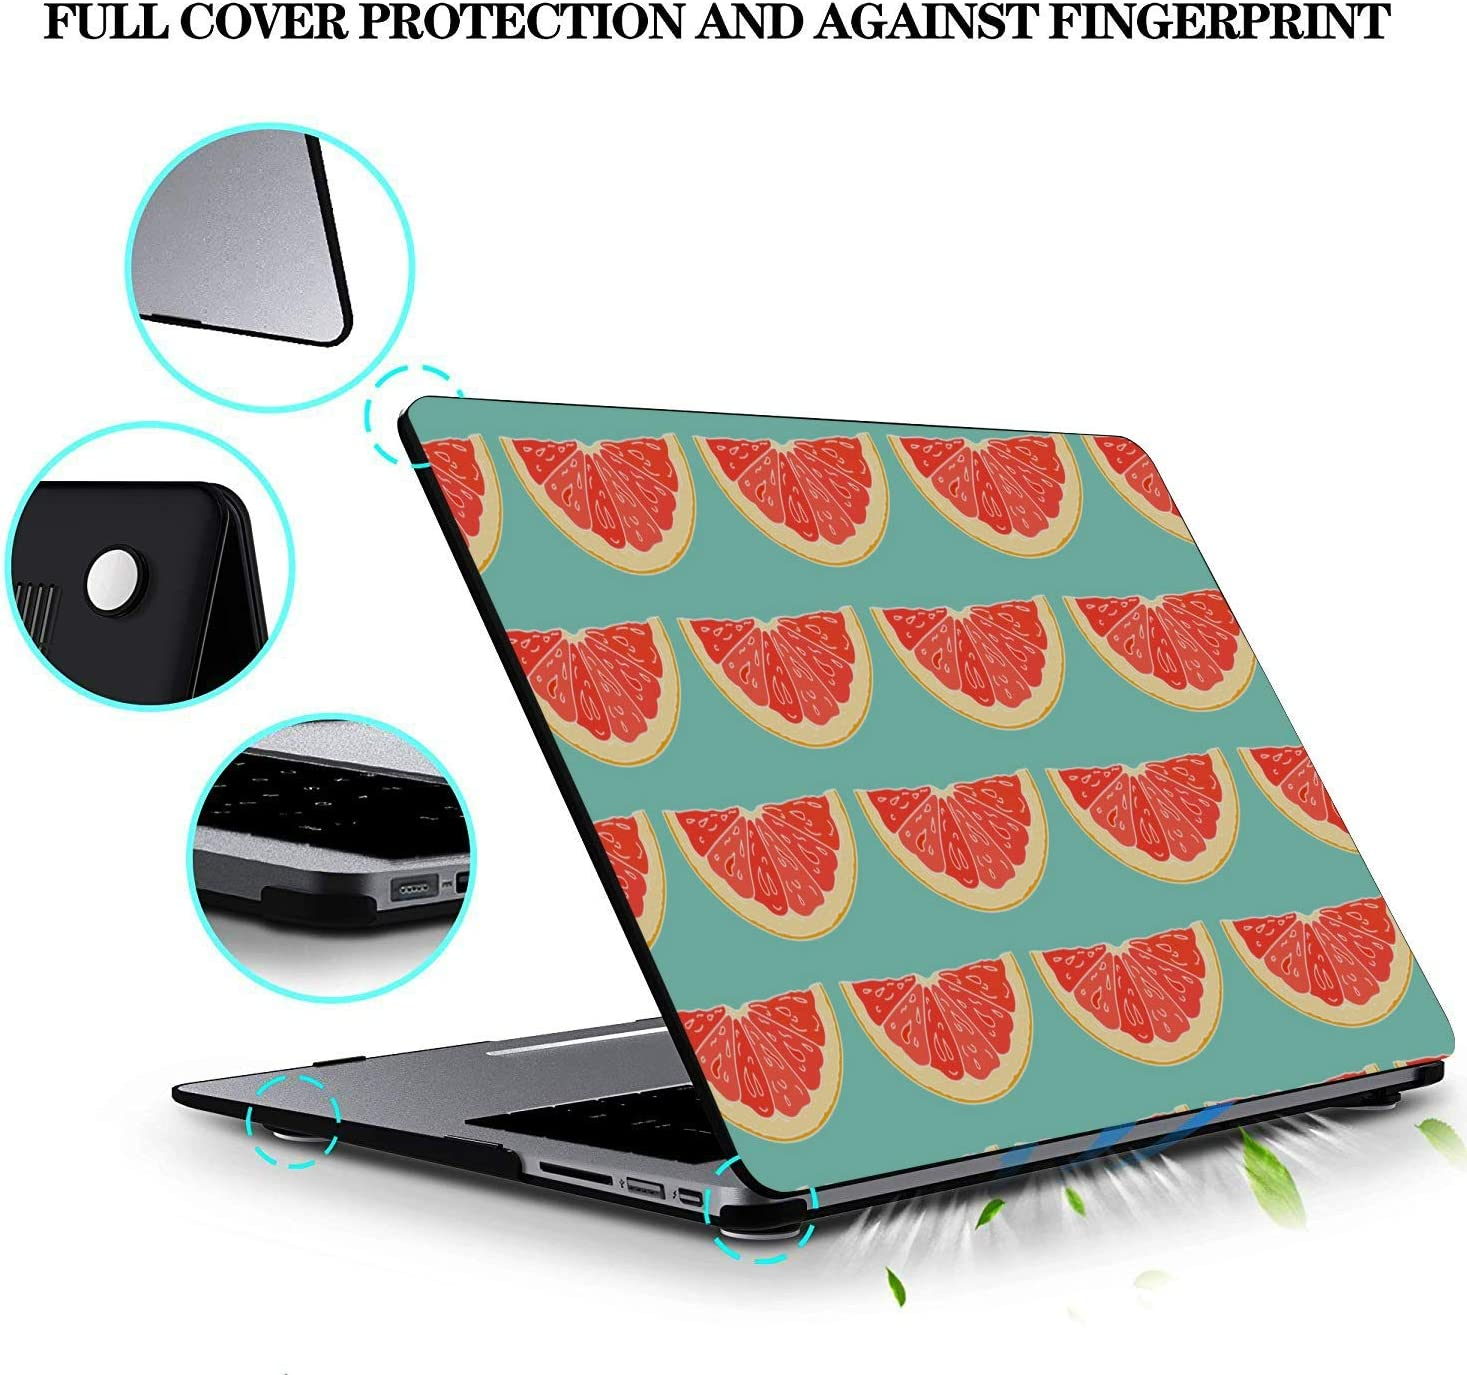 MacBook Pro Hard Cover Round Summer Painting Fruit Red Pomelo Plastic Hard Shell Compatible Mac Air 11 Pro 13 15 Mac Book Air Case Protection for MacBook 2016-2019 Version